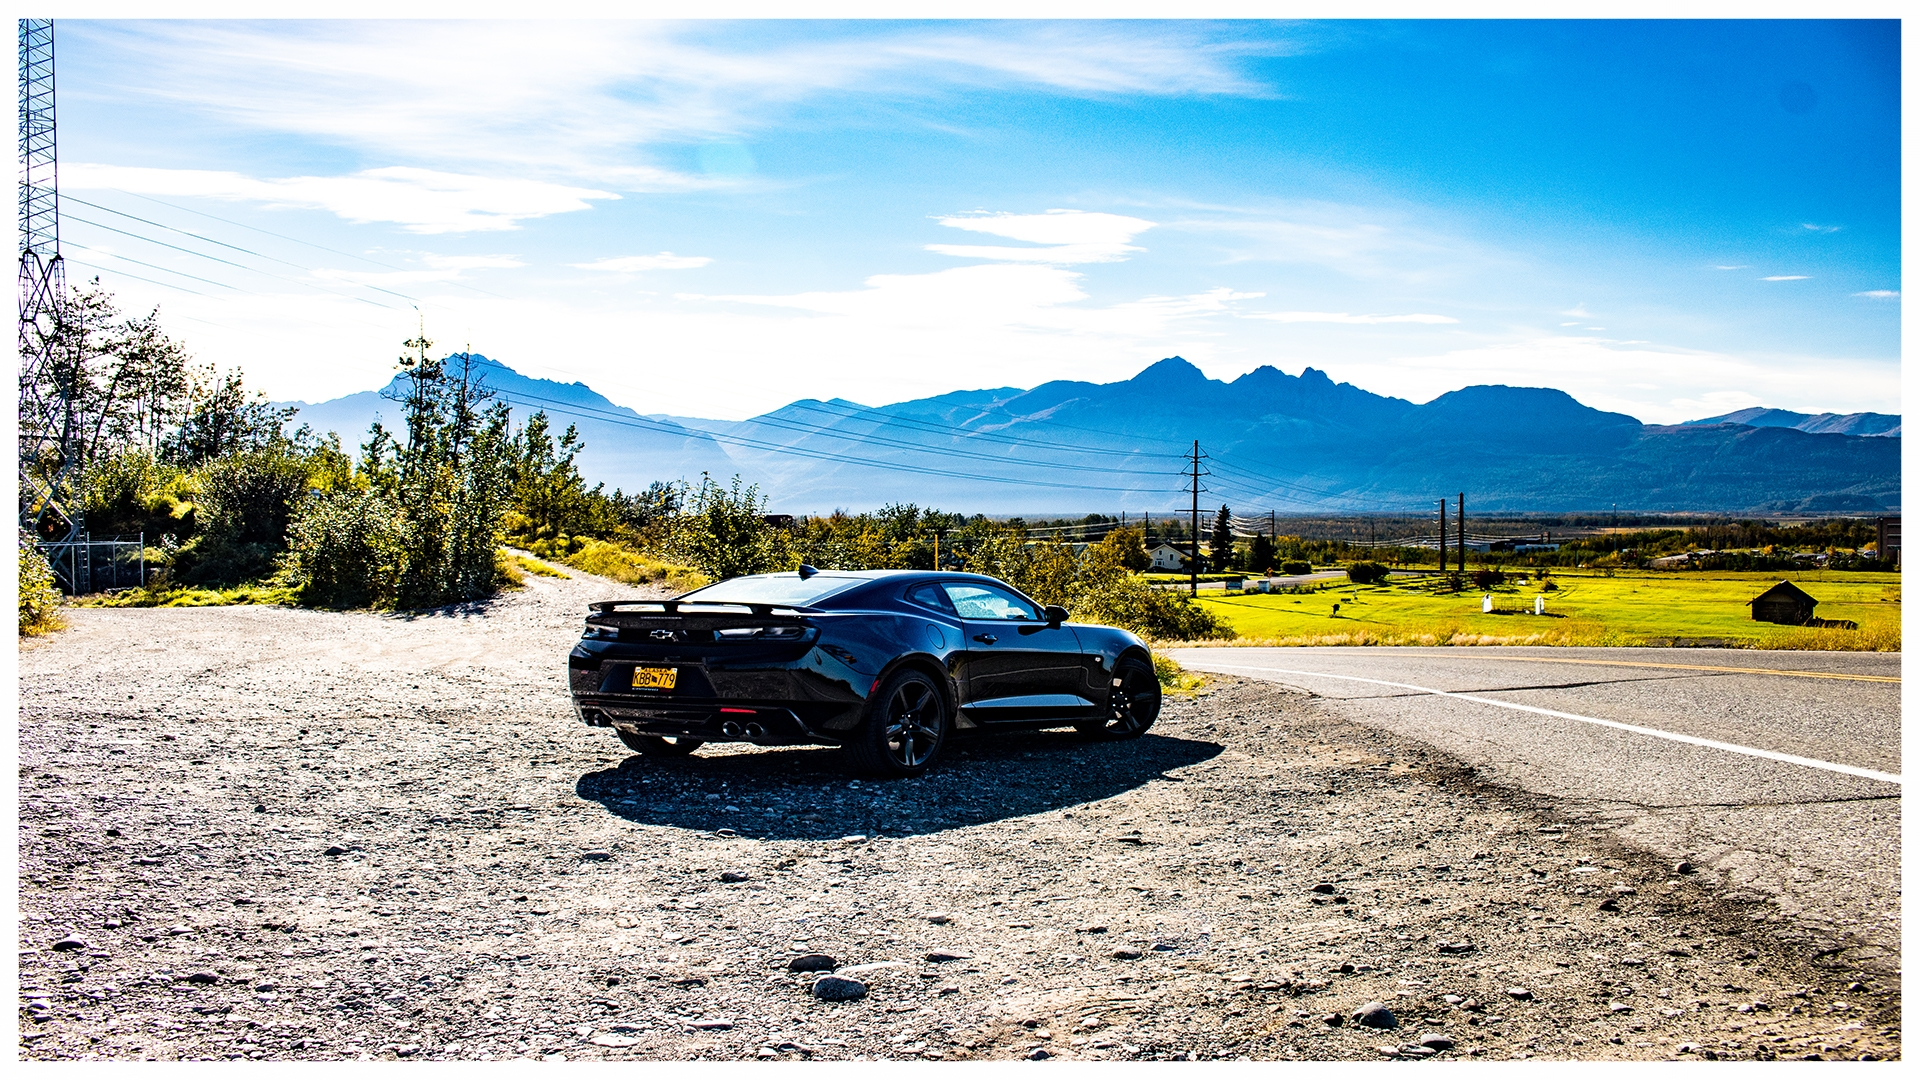 Camaro Back & Mountains.jpg